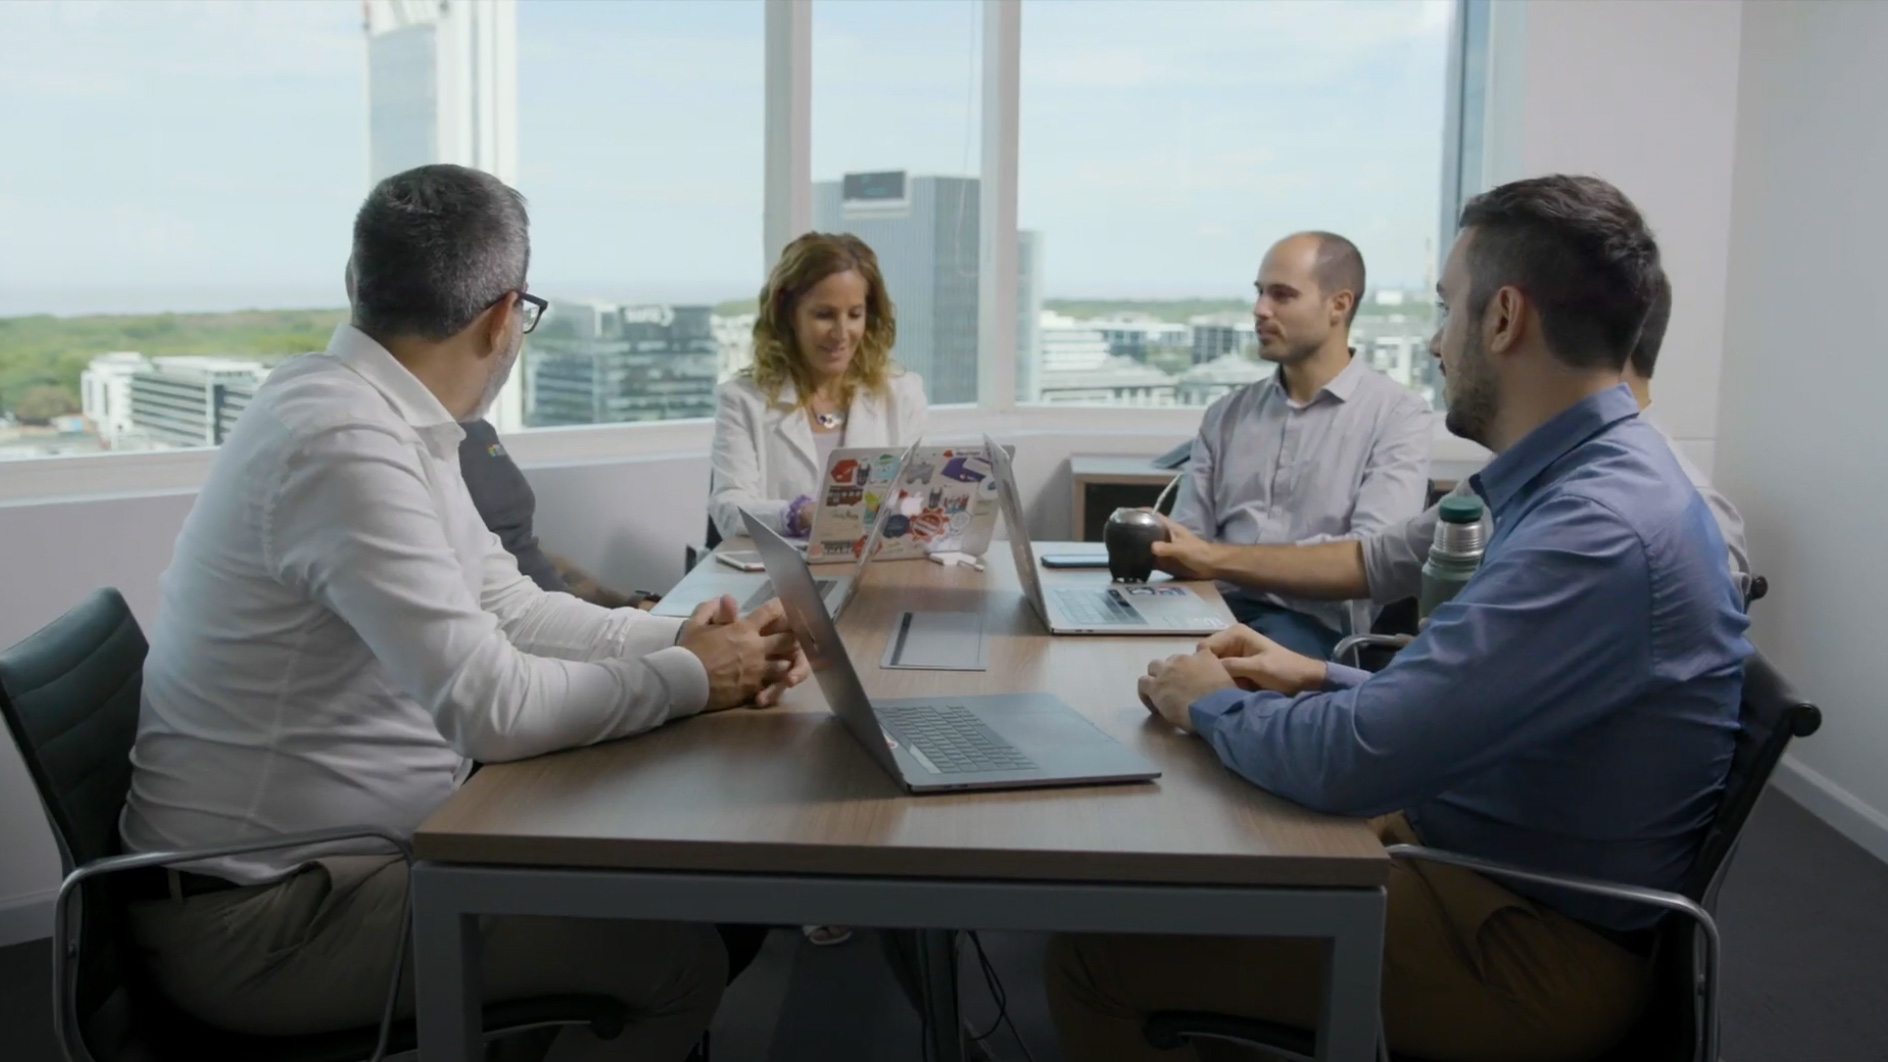 coworkers meeting around table